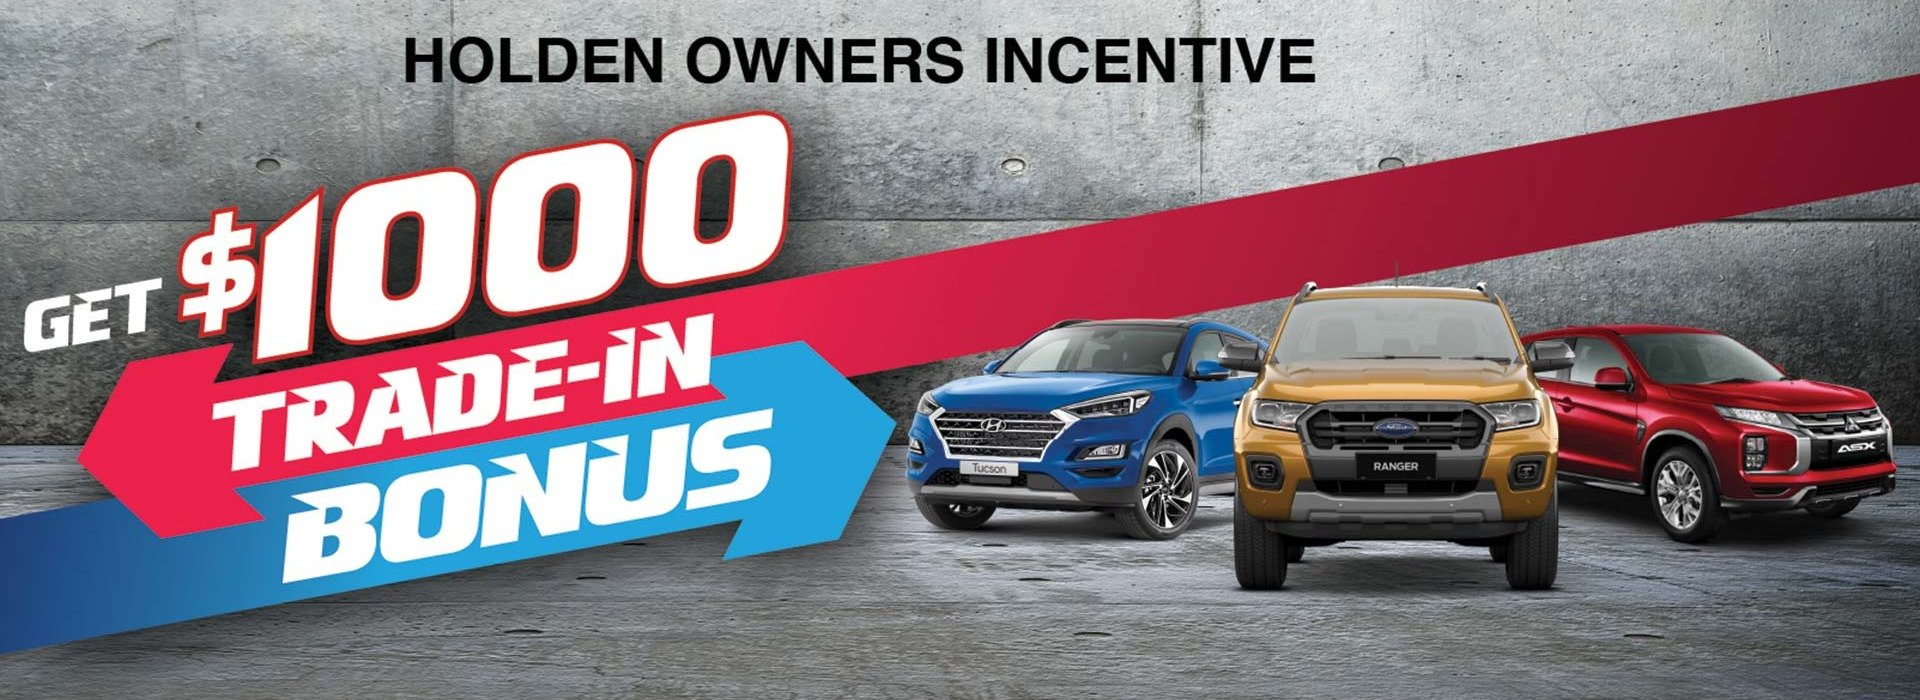 Steinborner Mitsubishi | Holden Owners Incentive Special Offer